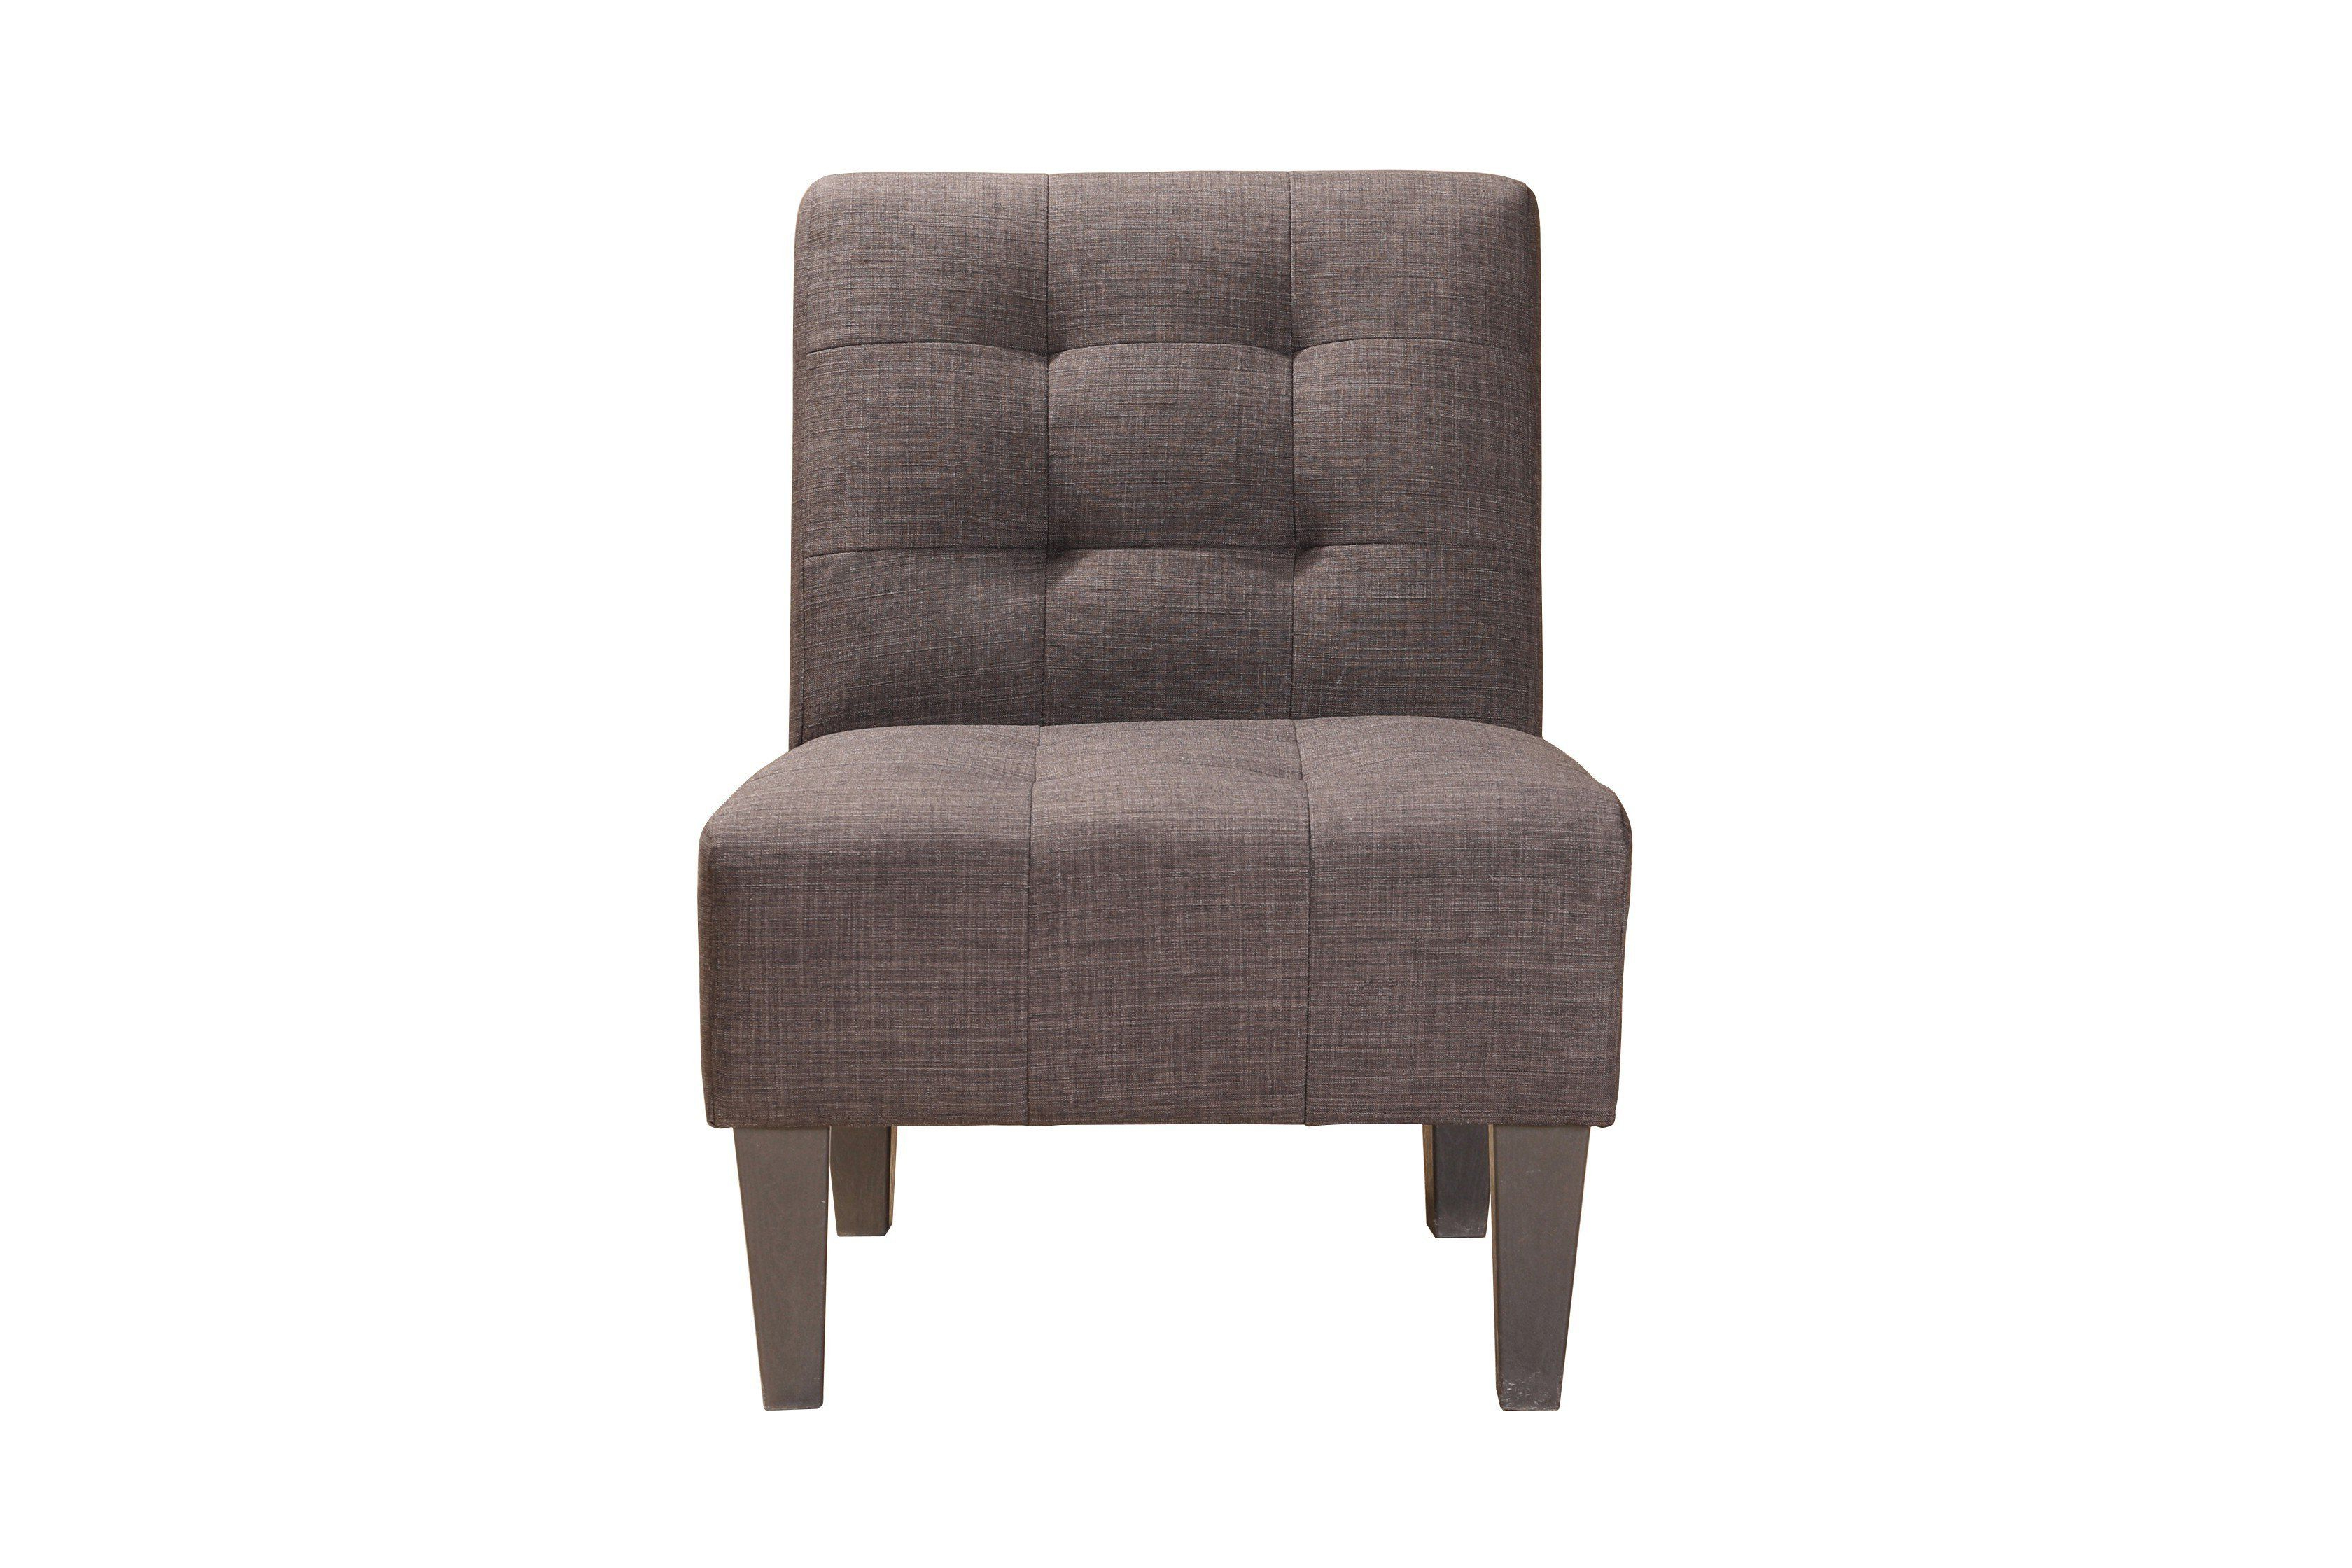 Widely Used Sheldon Oversized Sofa Chairs Throughout Sheldon Accent Chair Charcoal #accentchair (View 10 of 20)